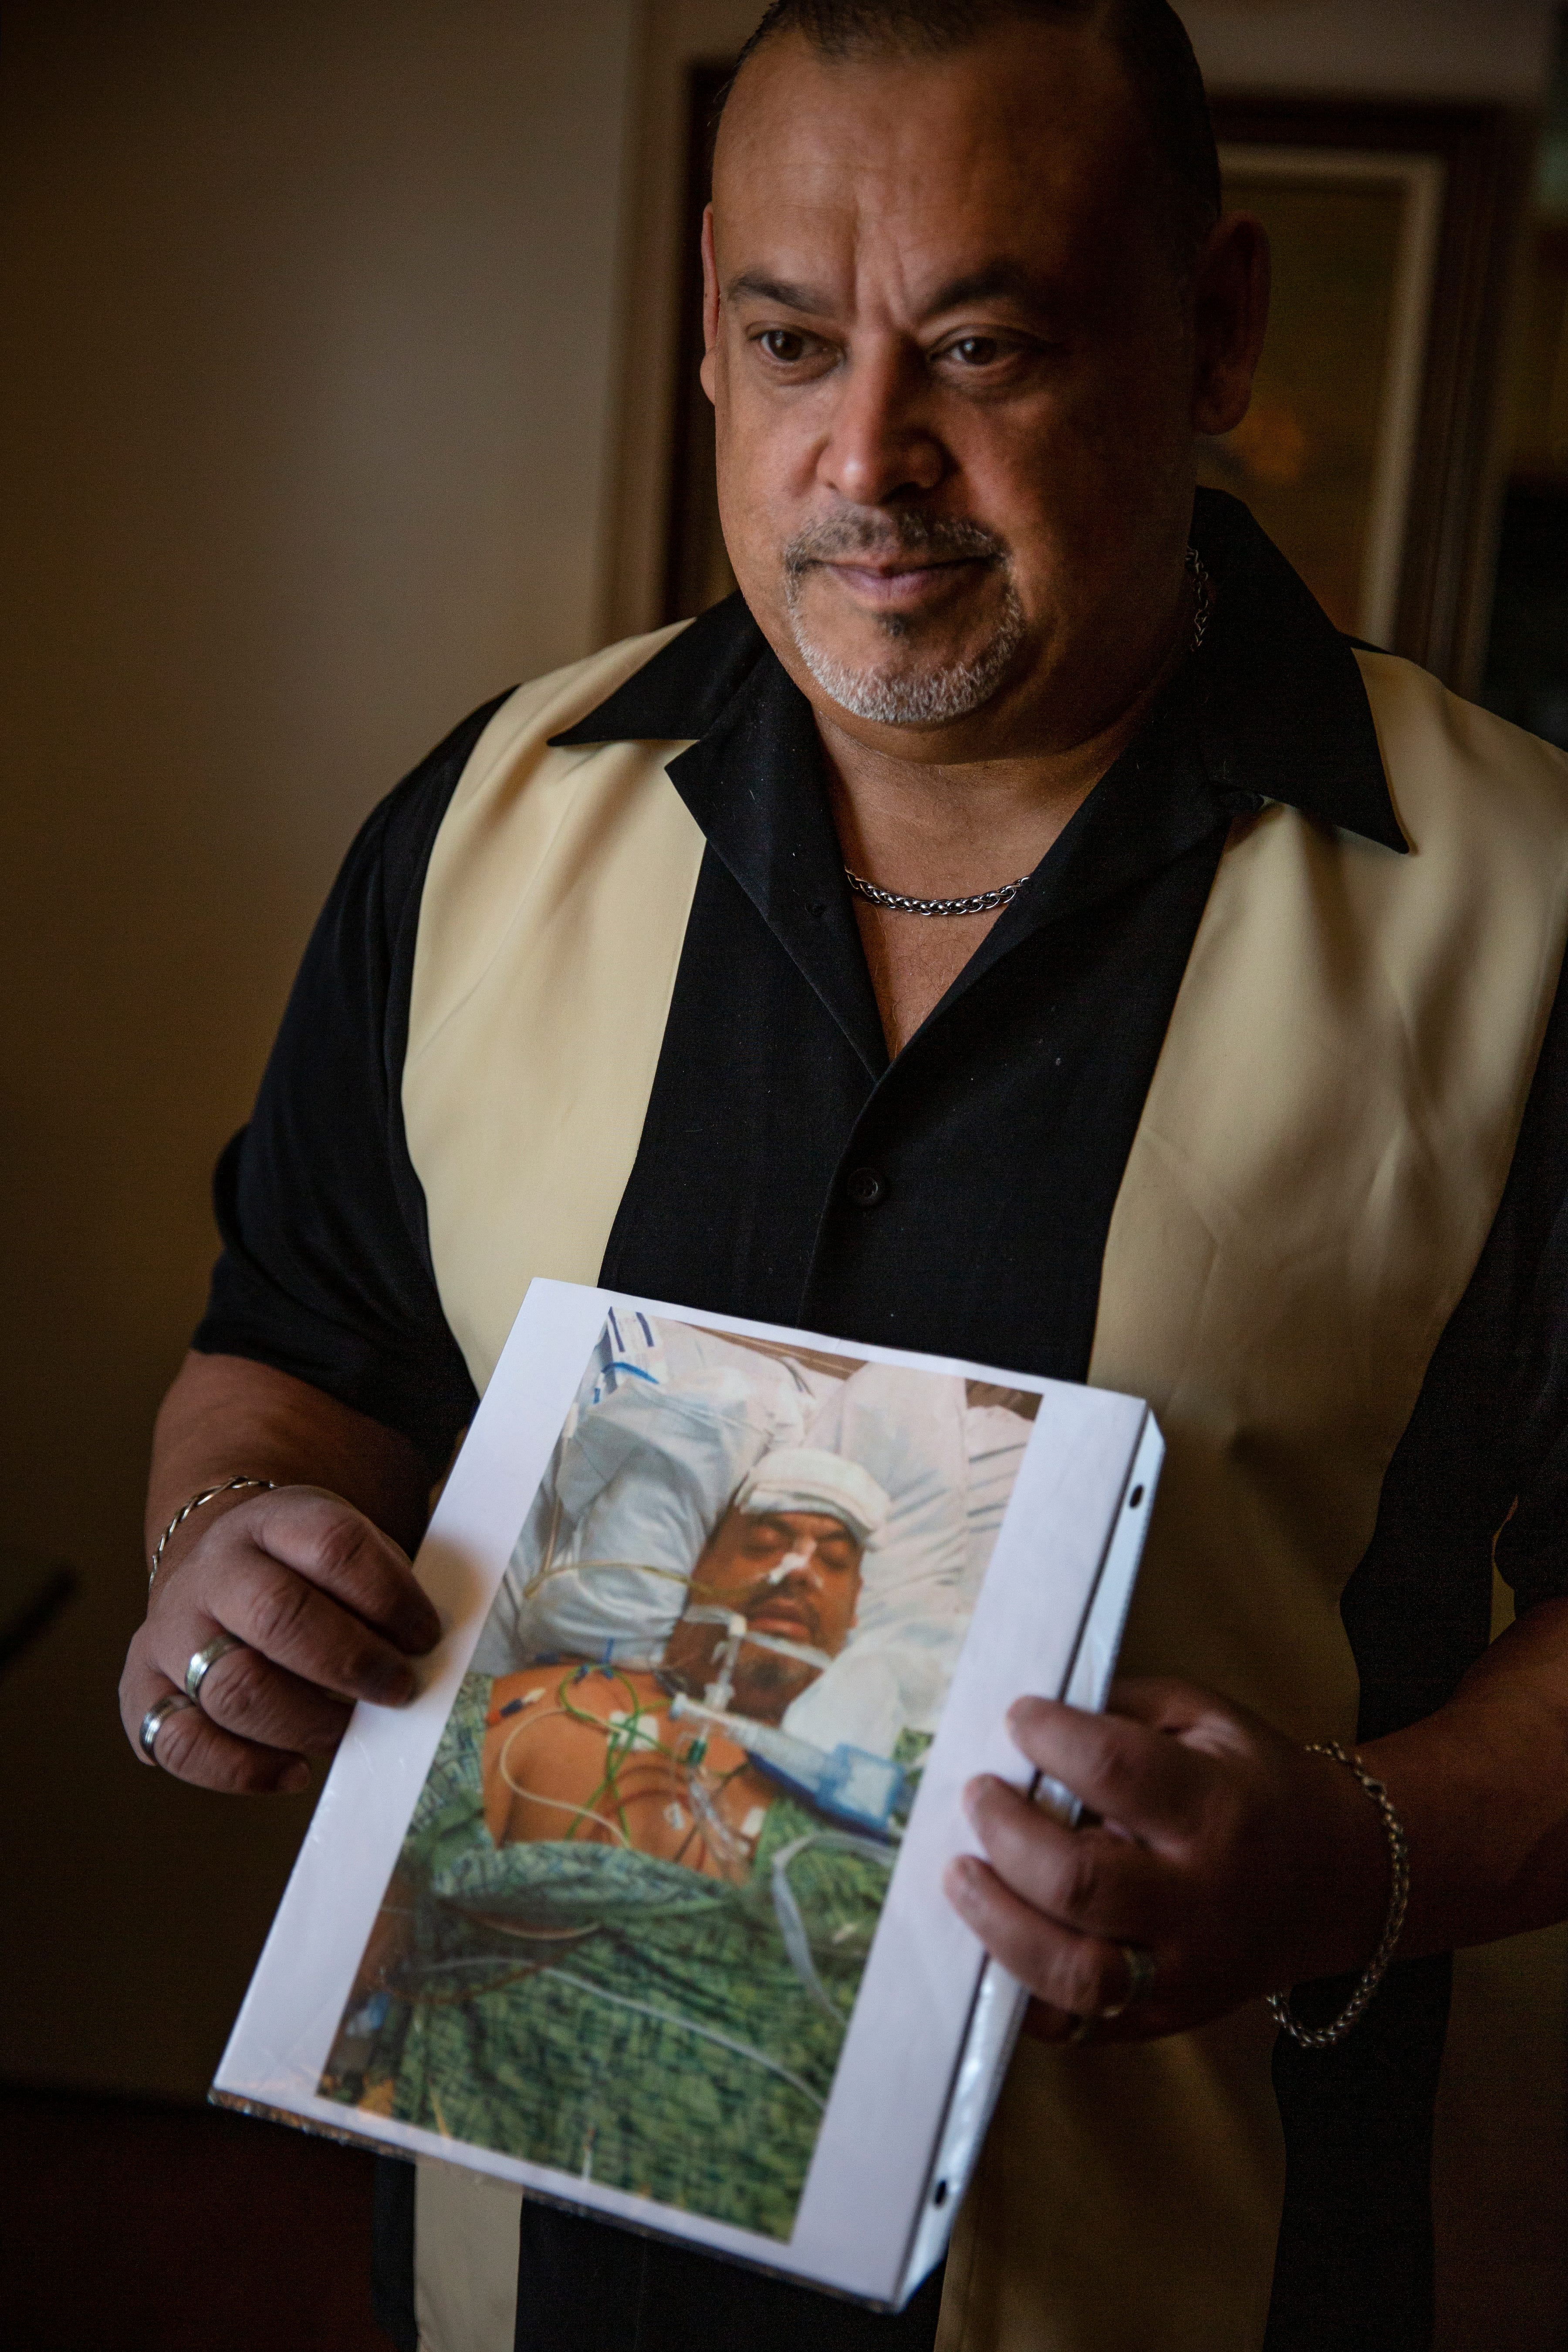 """Ricardo """"Rick"""" Martinez, holds a photo his sister took of him while he was in the hospital recovering from injuries he suffered during a liposuction procedure in 2013."""